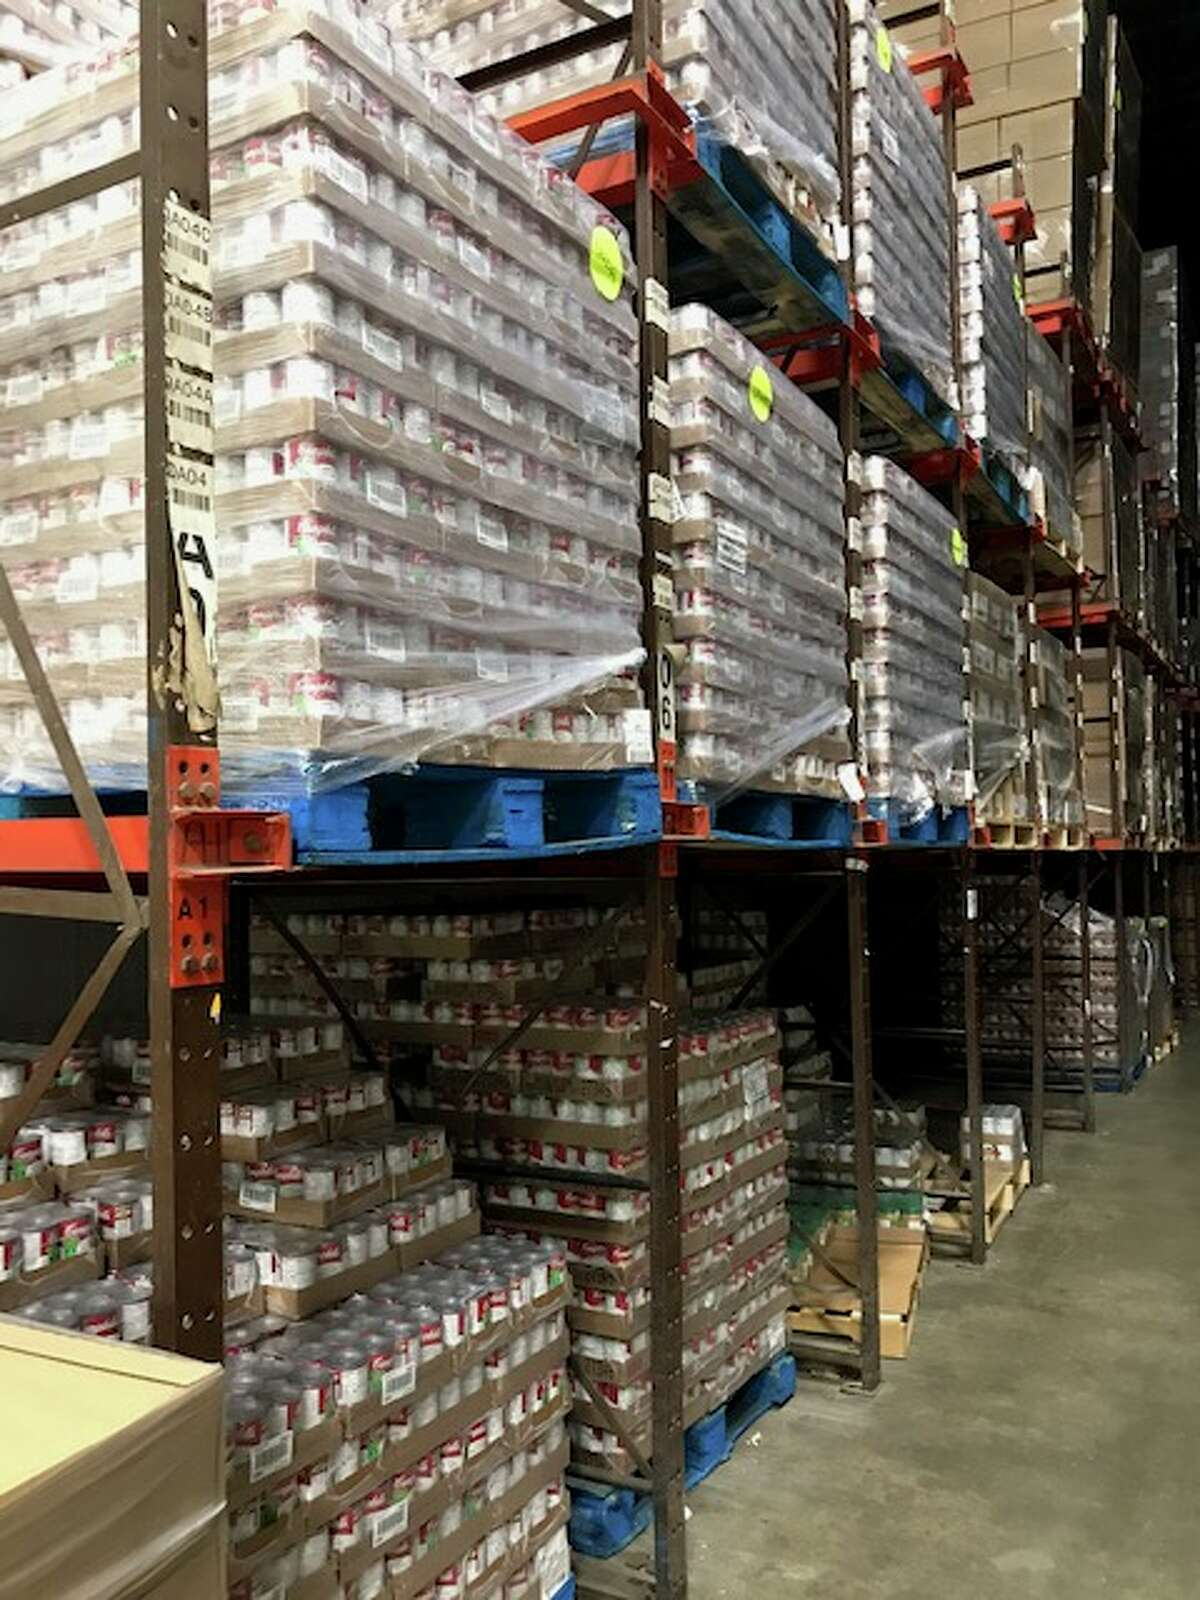 Thousands of cans of soup newly arrived await distribution to 600 soup kitchens, food pantries and homeless shelters among 1,000 agencies the Regional Food Bank services.